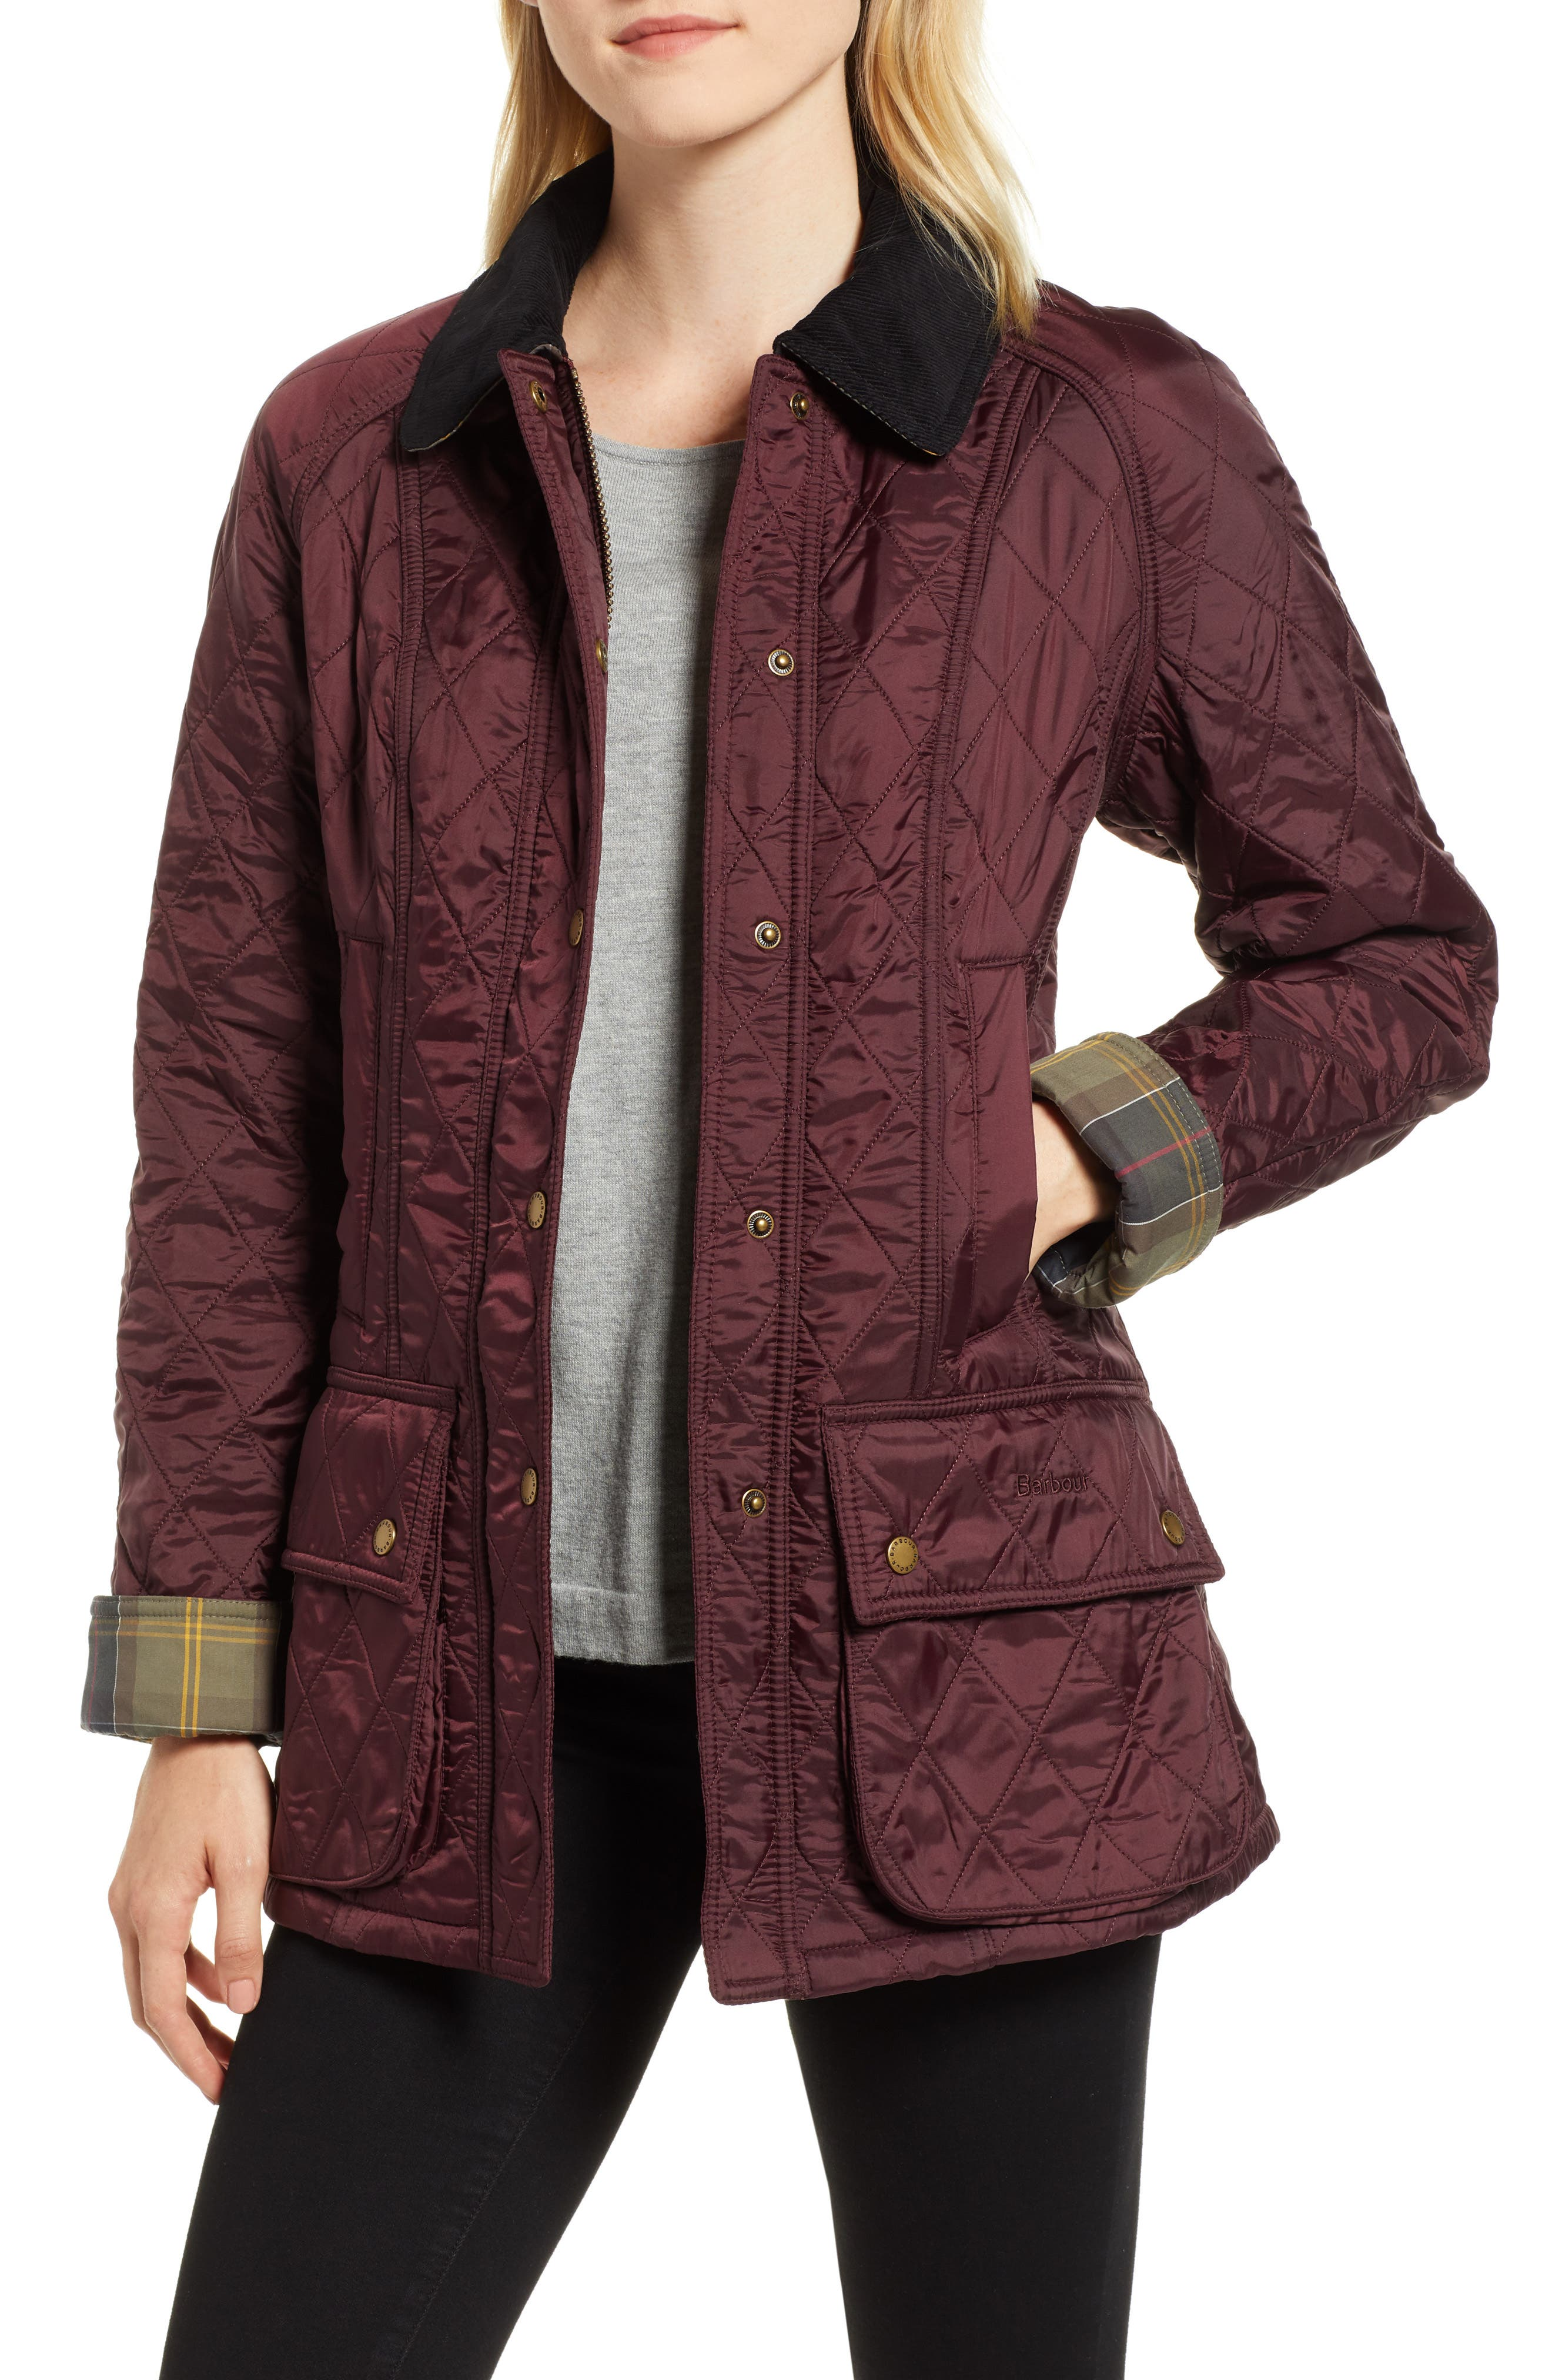 BARBOUR, 'Beadnell' Quilted Jacket, Main thumbnail 1, color, 930